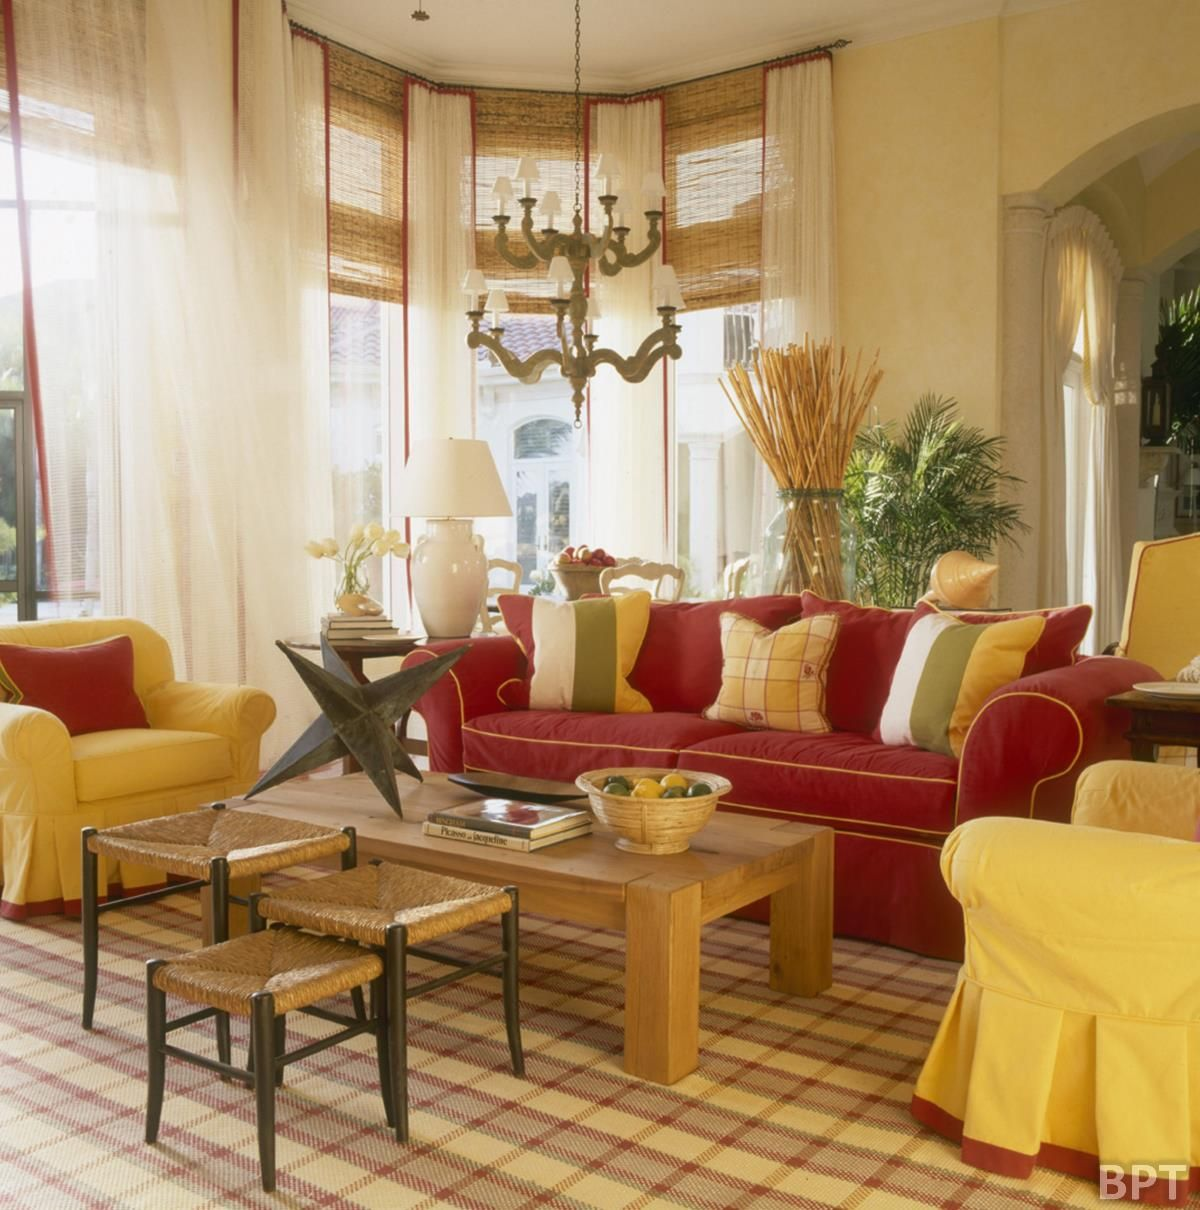 Living Room With Red Sofa Classic Interior Living Room Design With Yellow And Red Sofa